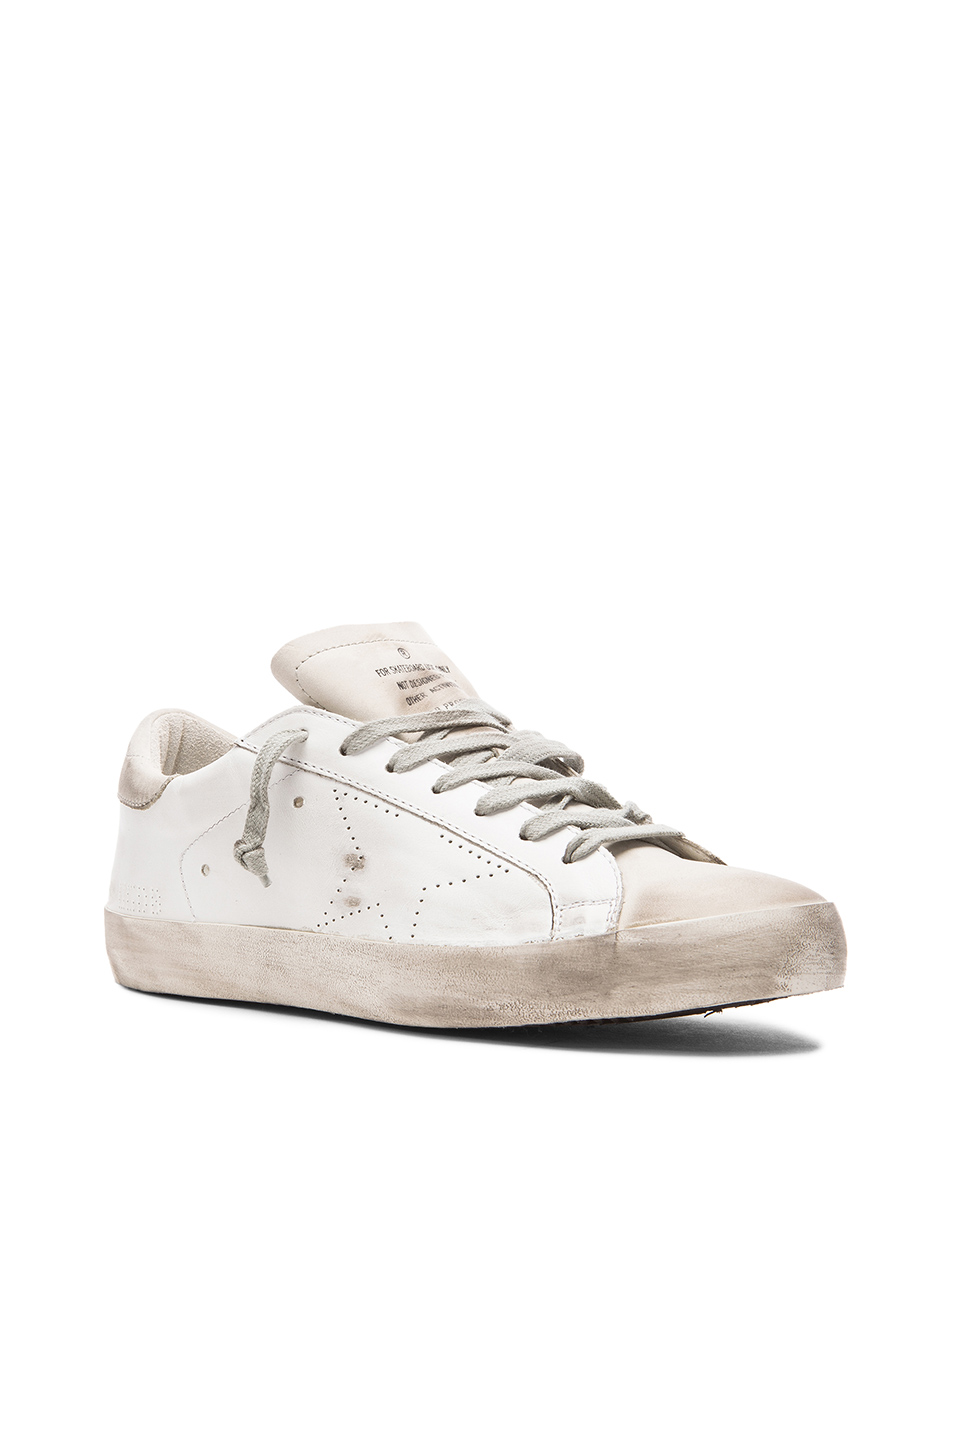 Golden Goose Superstar Sneakers in White